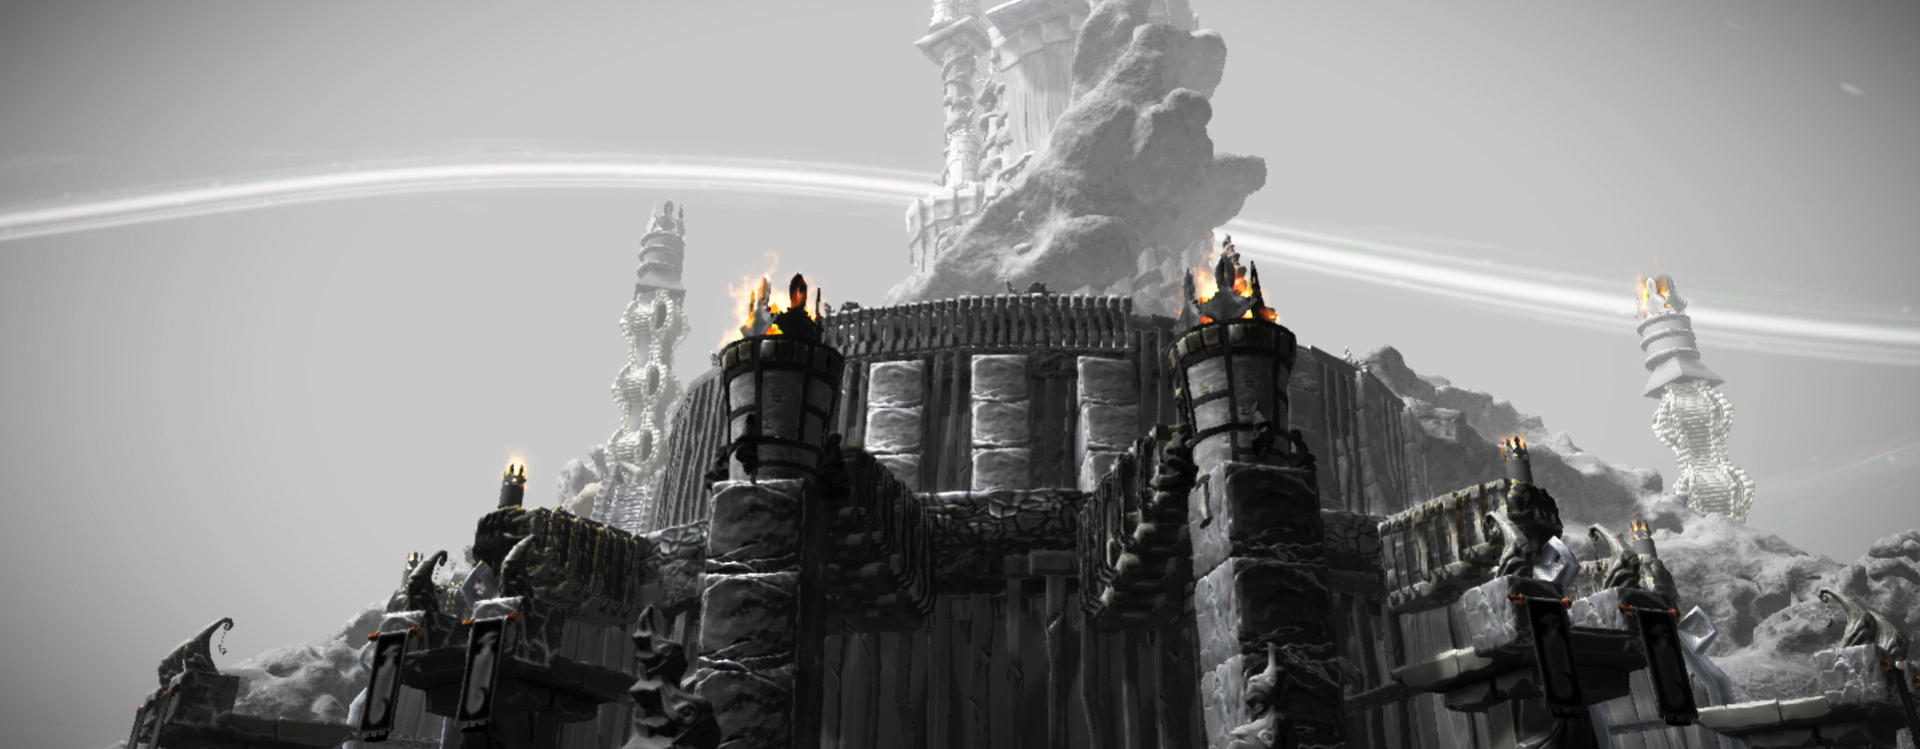 Project Spark—Building structure